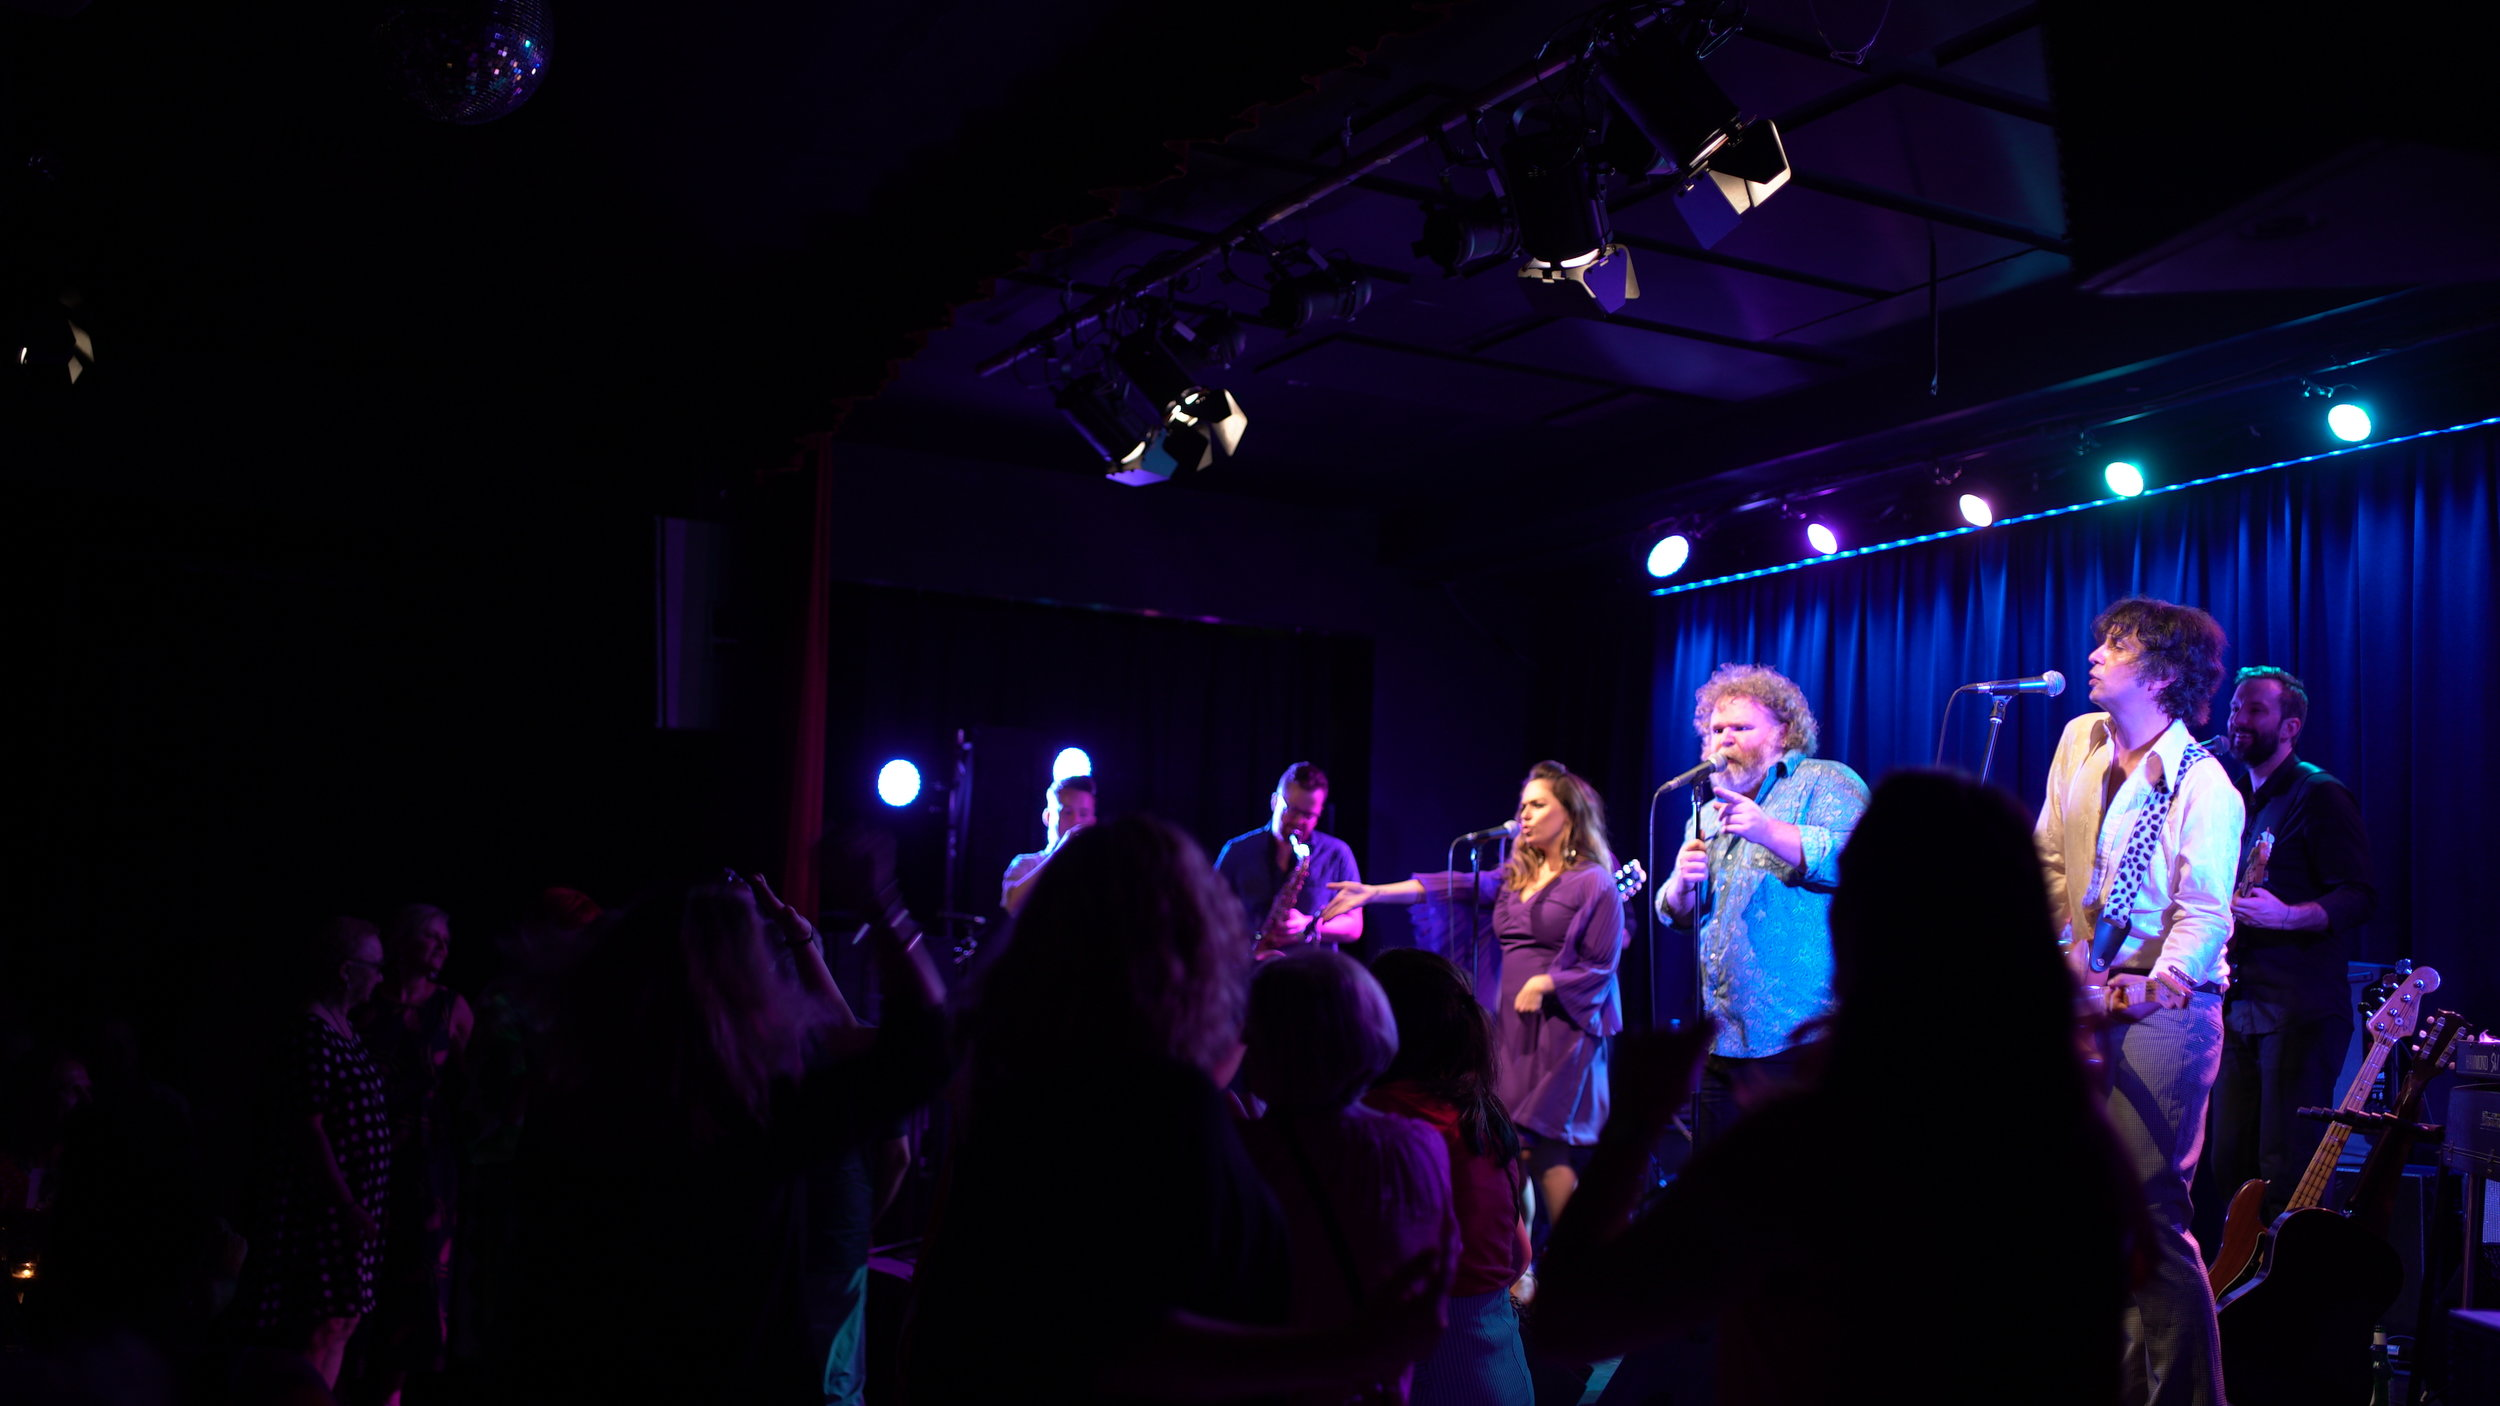 Raleigh and the Moreland City Soul Revue at the Caravan Club 2019. Photo by Ursula Woods